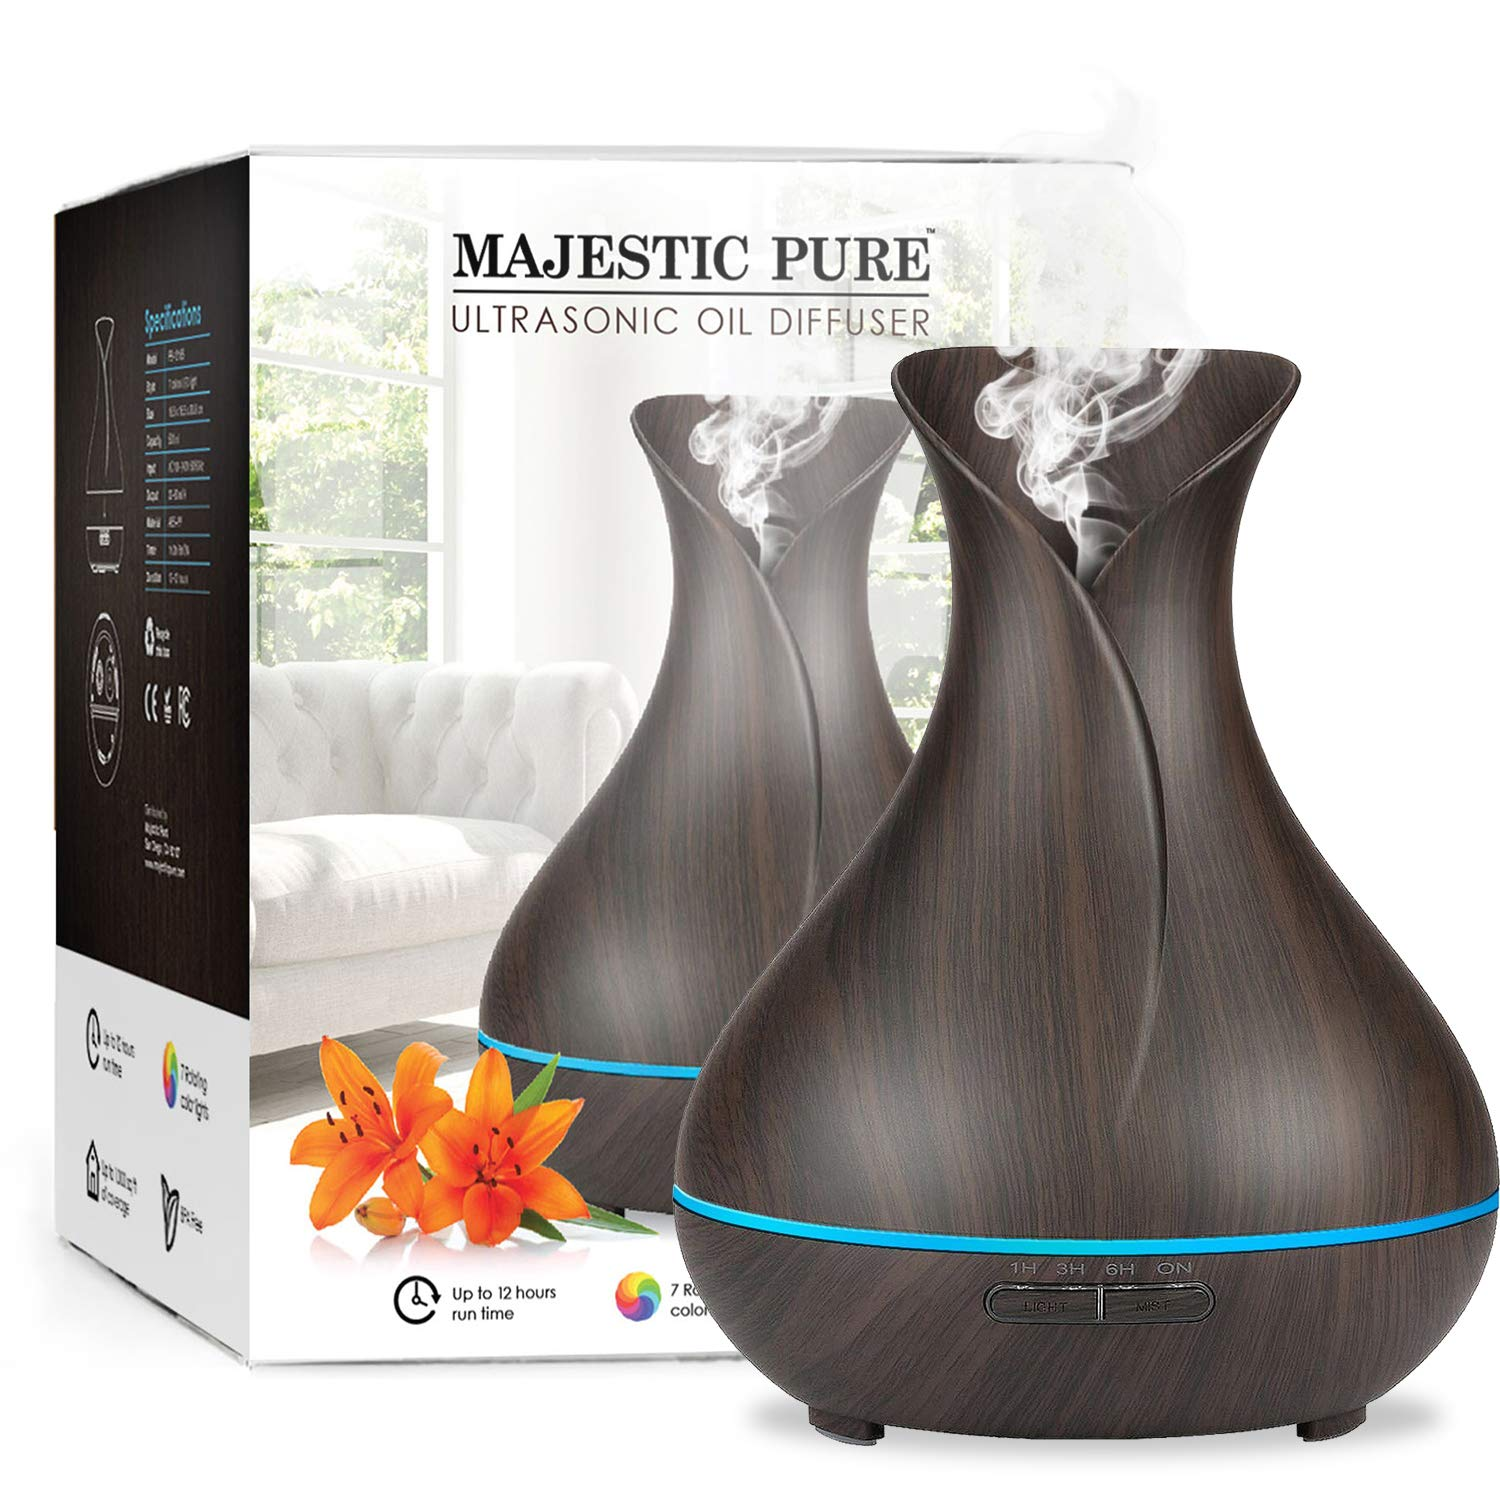 MAJESTIC PURE Essential Oil Diffuser - Advanced Cool Mist Humidifier, Ultrasonic Aromatherapy Diffuser with Strongest Mist Output - Best Coverage, Longer Run Times, BPA Safe - 400ml